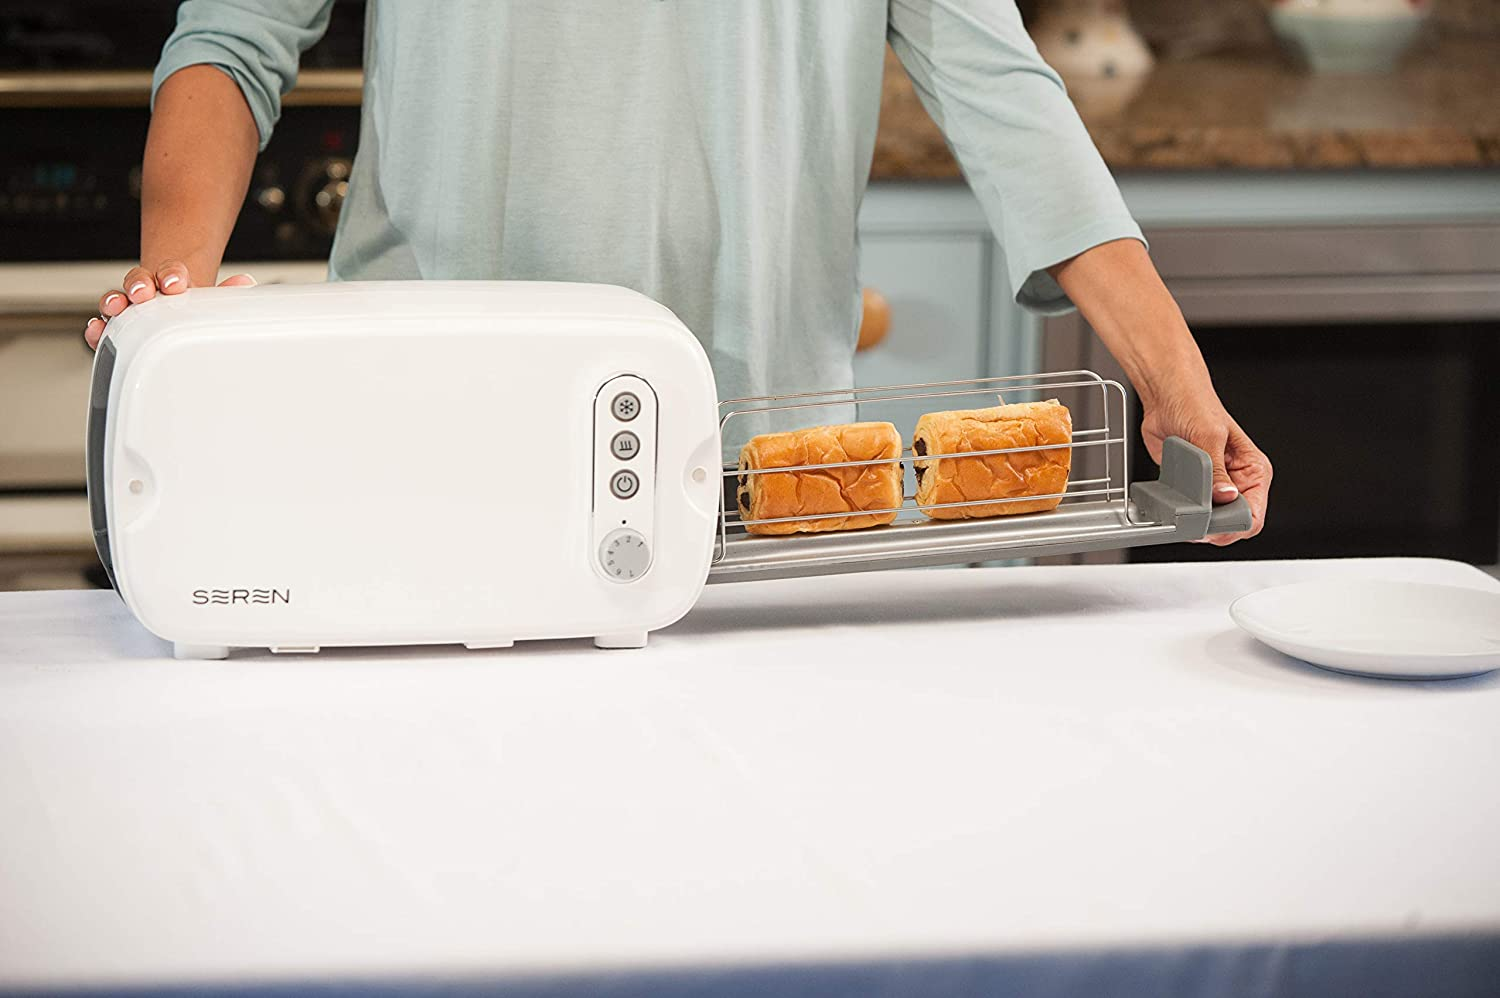 Berghoff Seren Side Loading Toaster Cook or Toast any Size Bread Pastry Bagel Sandwich or any snack. Cook Pita or Panini Waffles or Bagels, Easy Clean Up, Cook from Frozen with Defrost Button